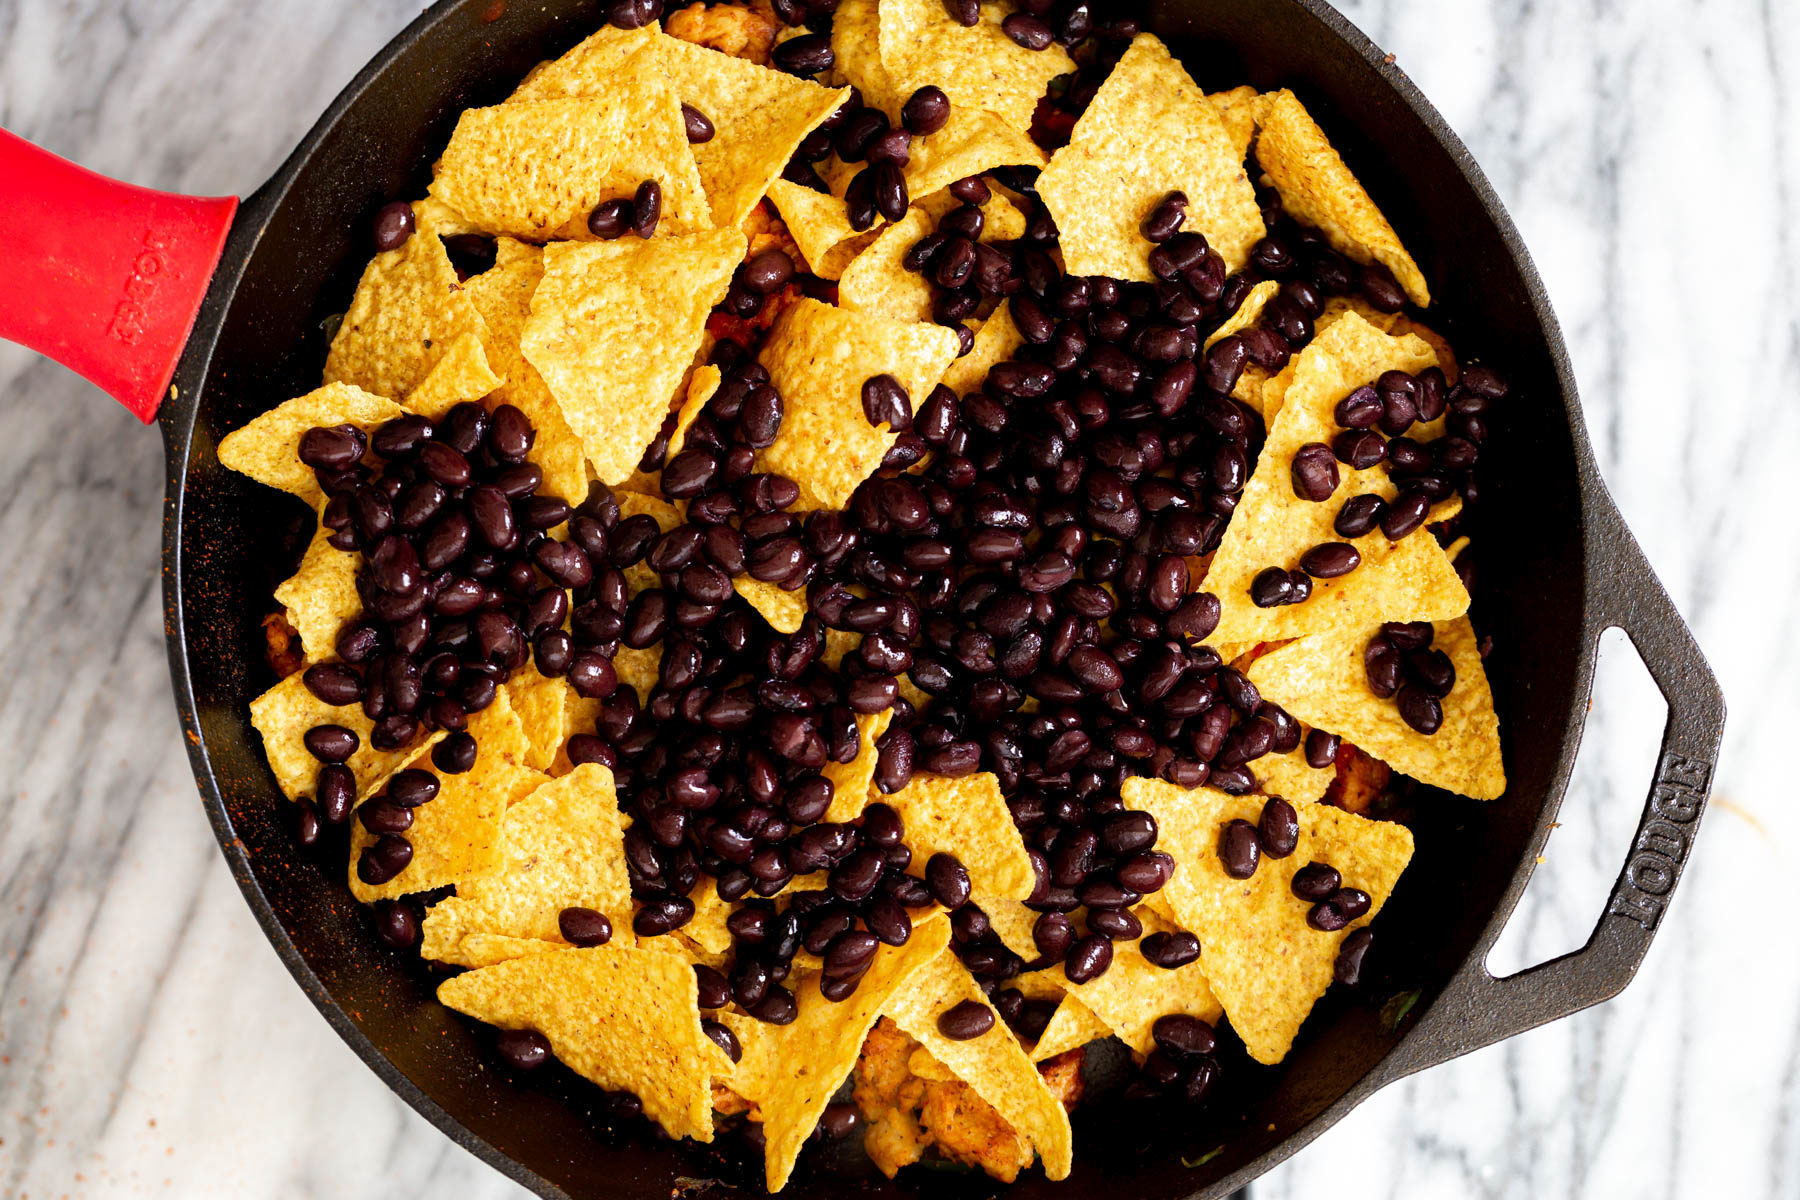 black beans being added on top of tortilla chips for making enchiladas